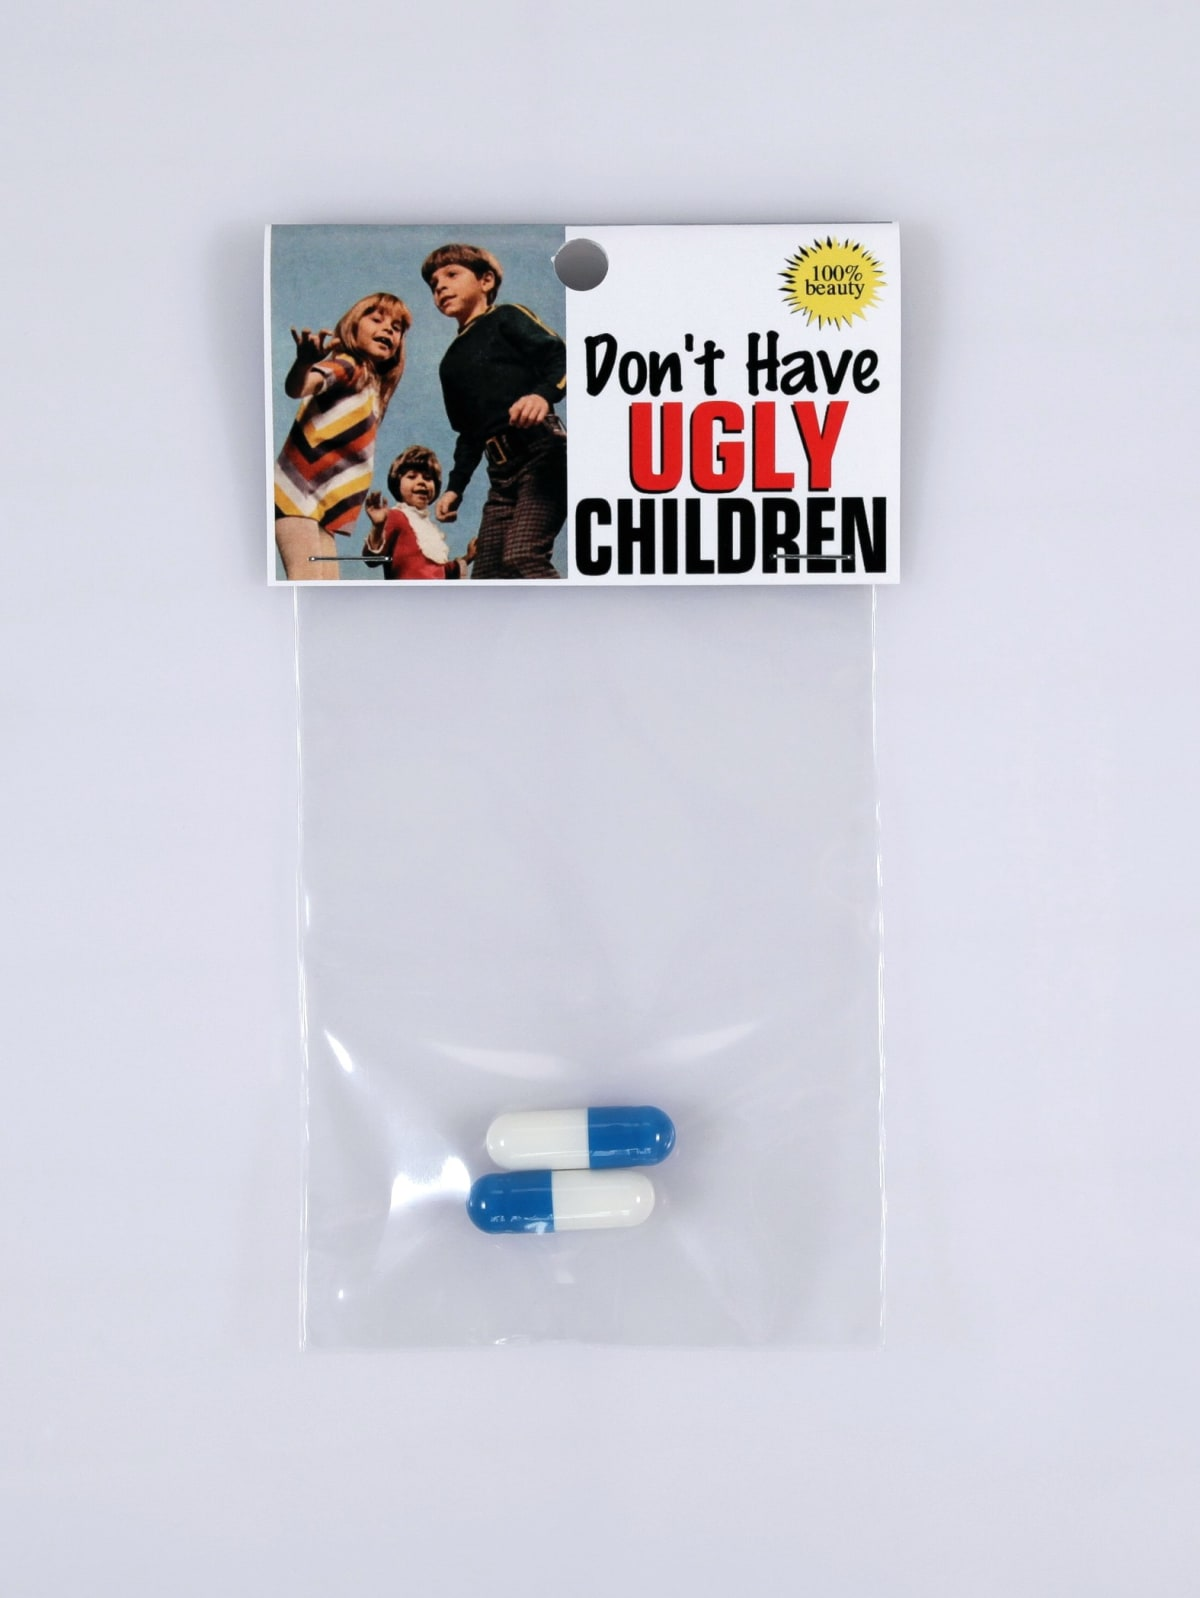 Don't have ugly children